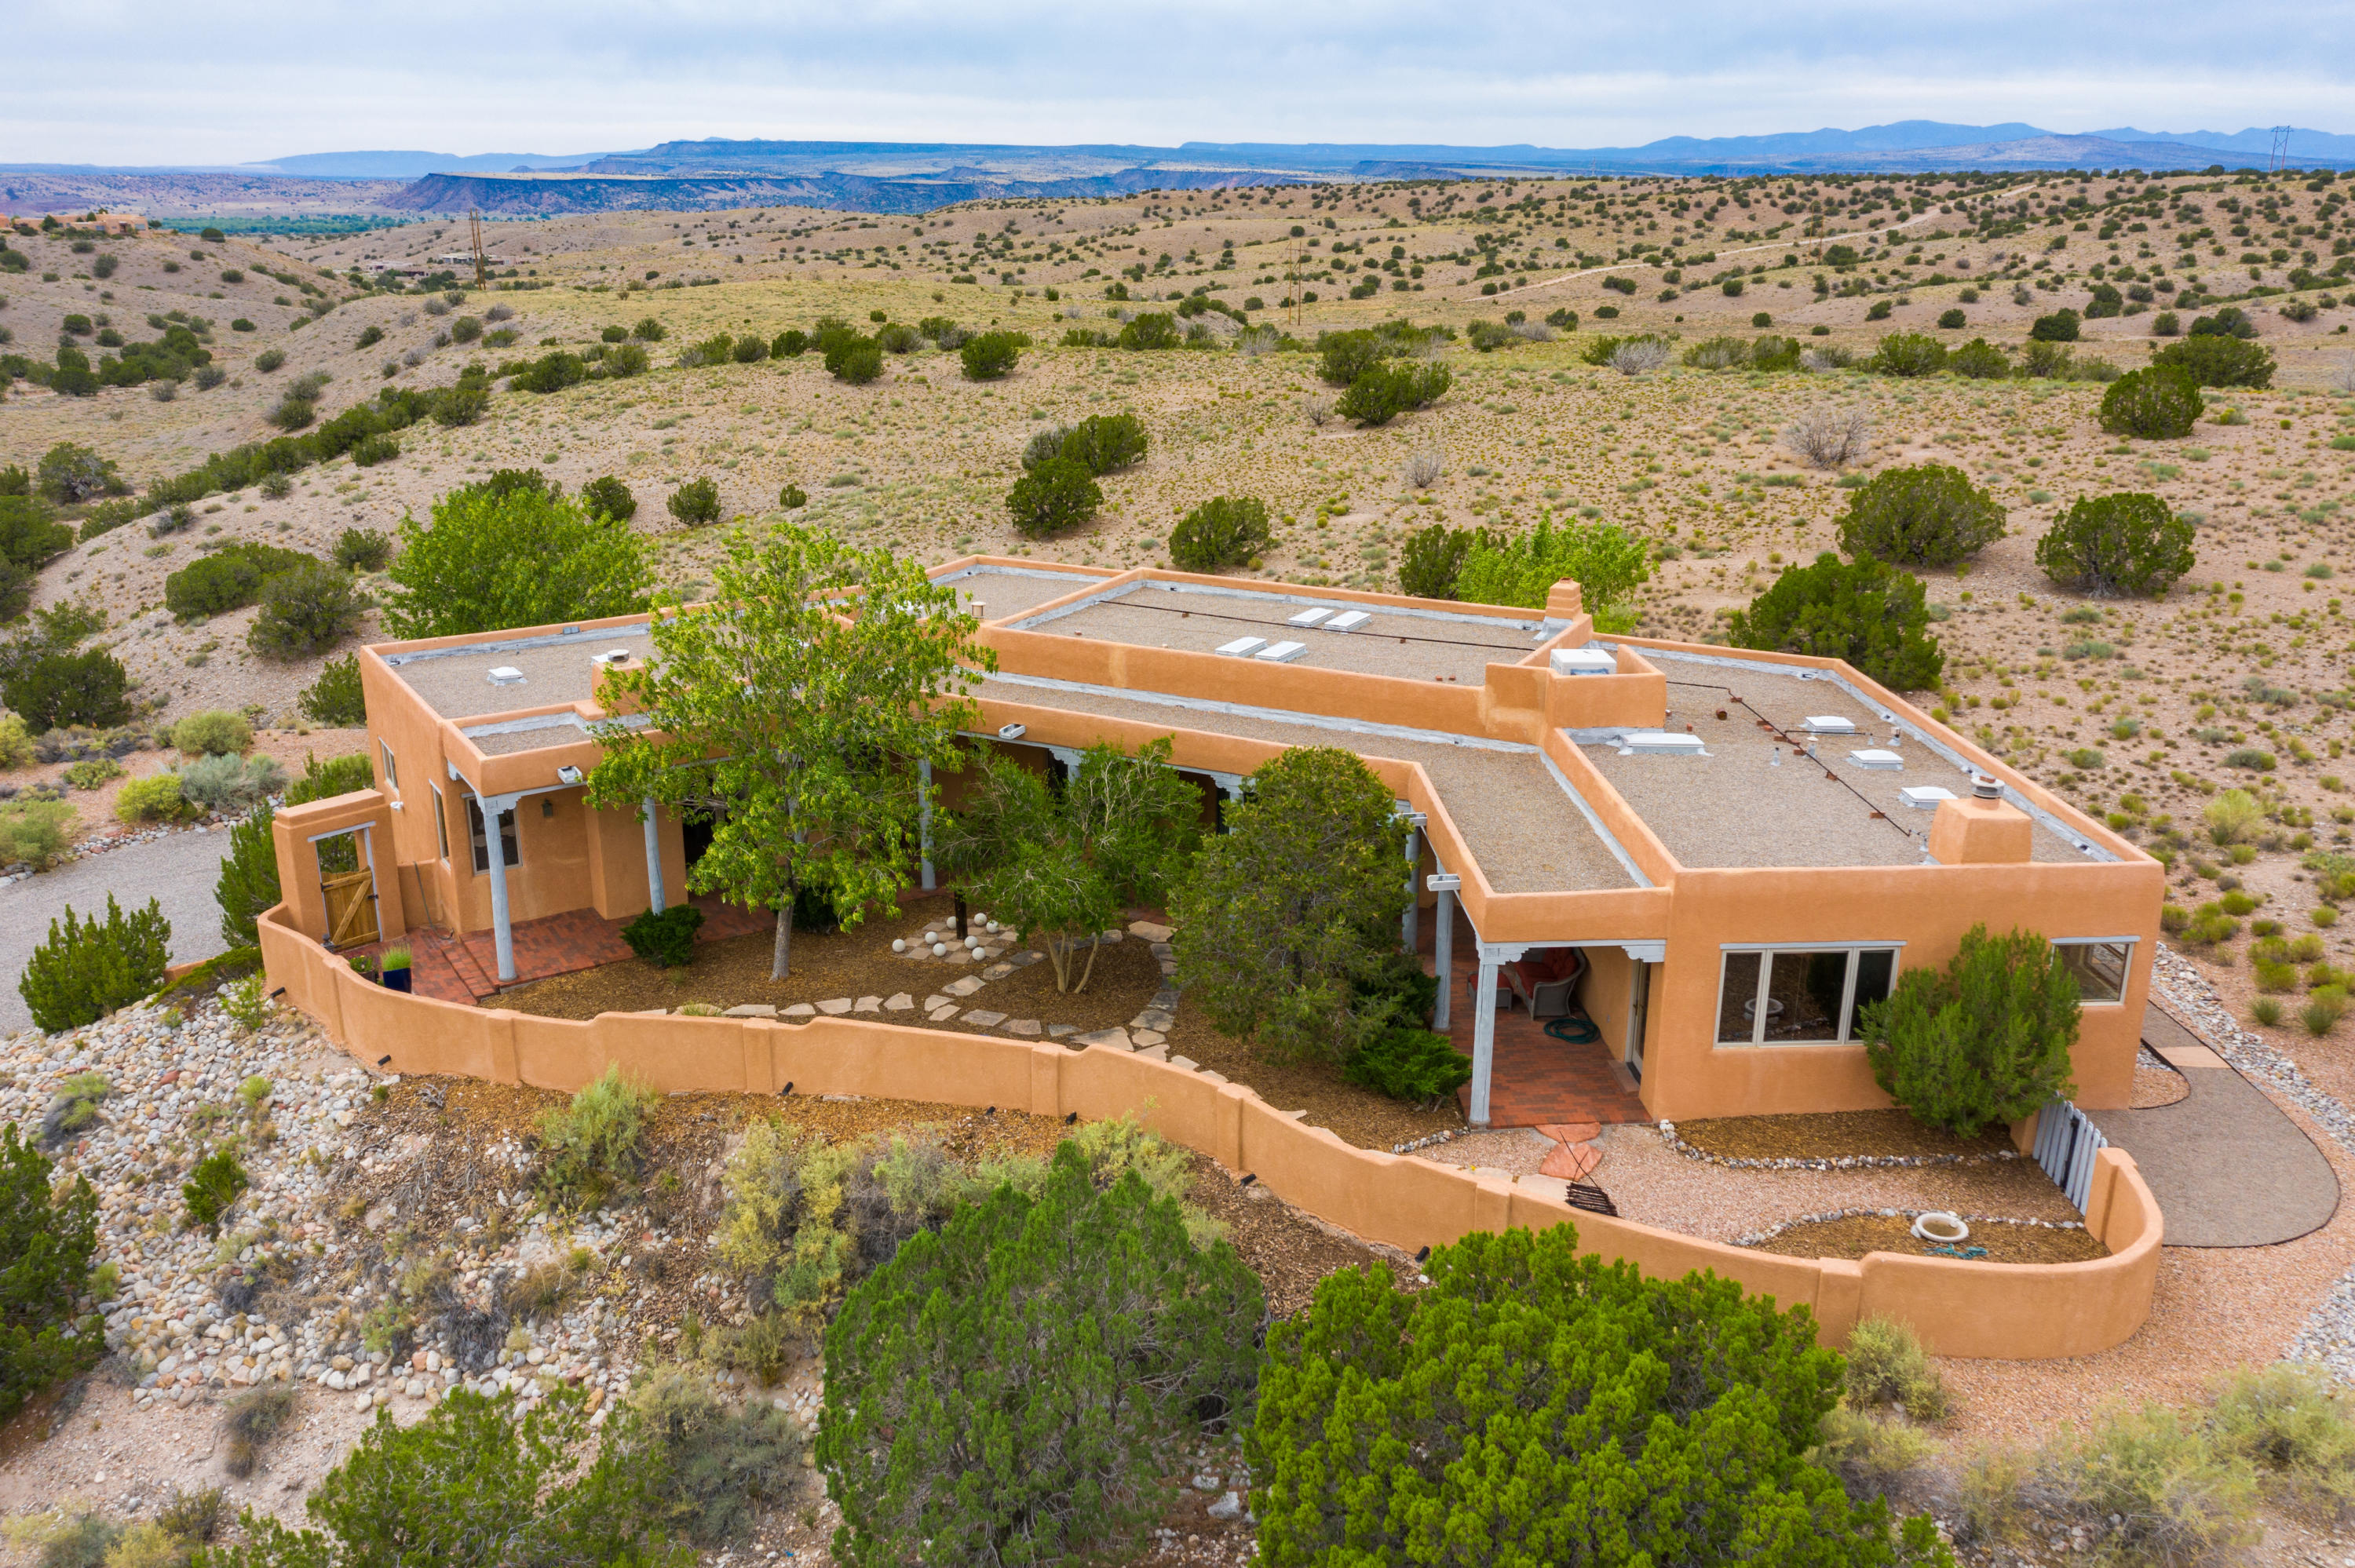 This Southwest custom home is located on a 1.9 acre cul-de-sac view lot in Placitas' La Mesa subdivision. The front of the home features an enclosed courtyard and large covered portal for enjoyment of the expansive Sandia Mountain views! The ''backyard'' is an outdoor enthusiast's dream as the property backs to BLM land with miles of trails. The home's features include beautiful brick flooring, raised, beamed tongue-and-groove ceilings, built-in shelving, nichos and bancos, a custom sideboard in the dining room, 3 fireplaces - both gas log and wood burning with a loglighter and many Pella windows throughout to showcase the amazing views! Please click on MORE for additional information on this amazing property . . .